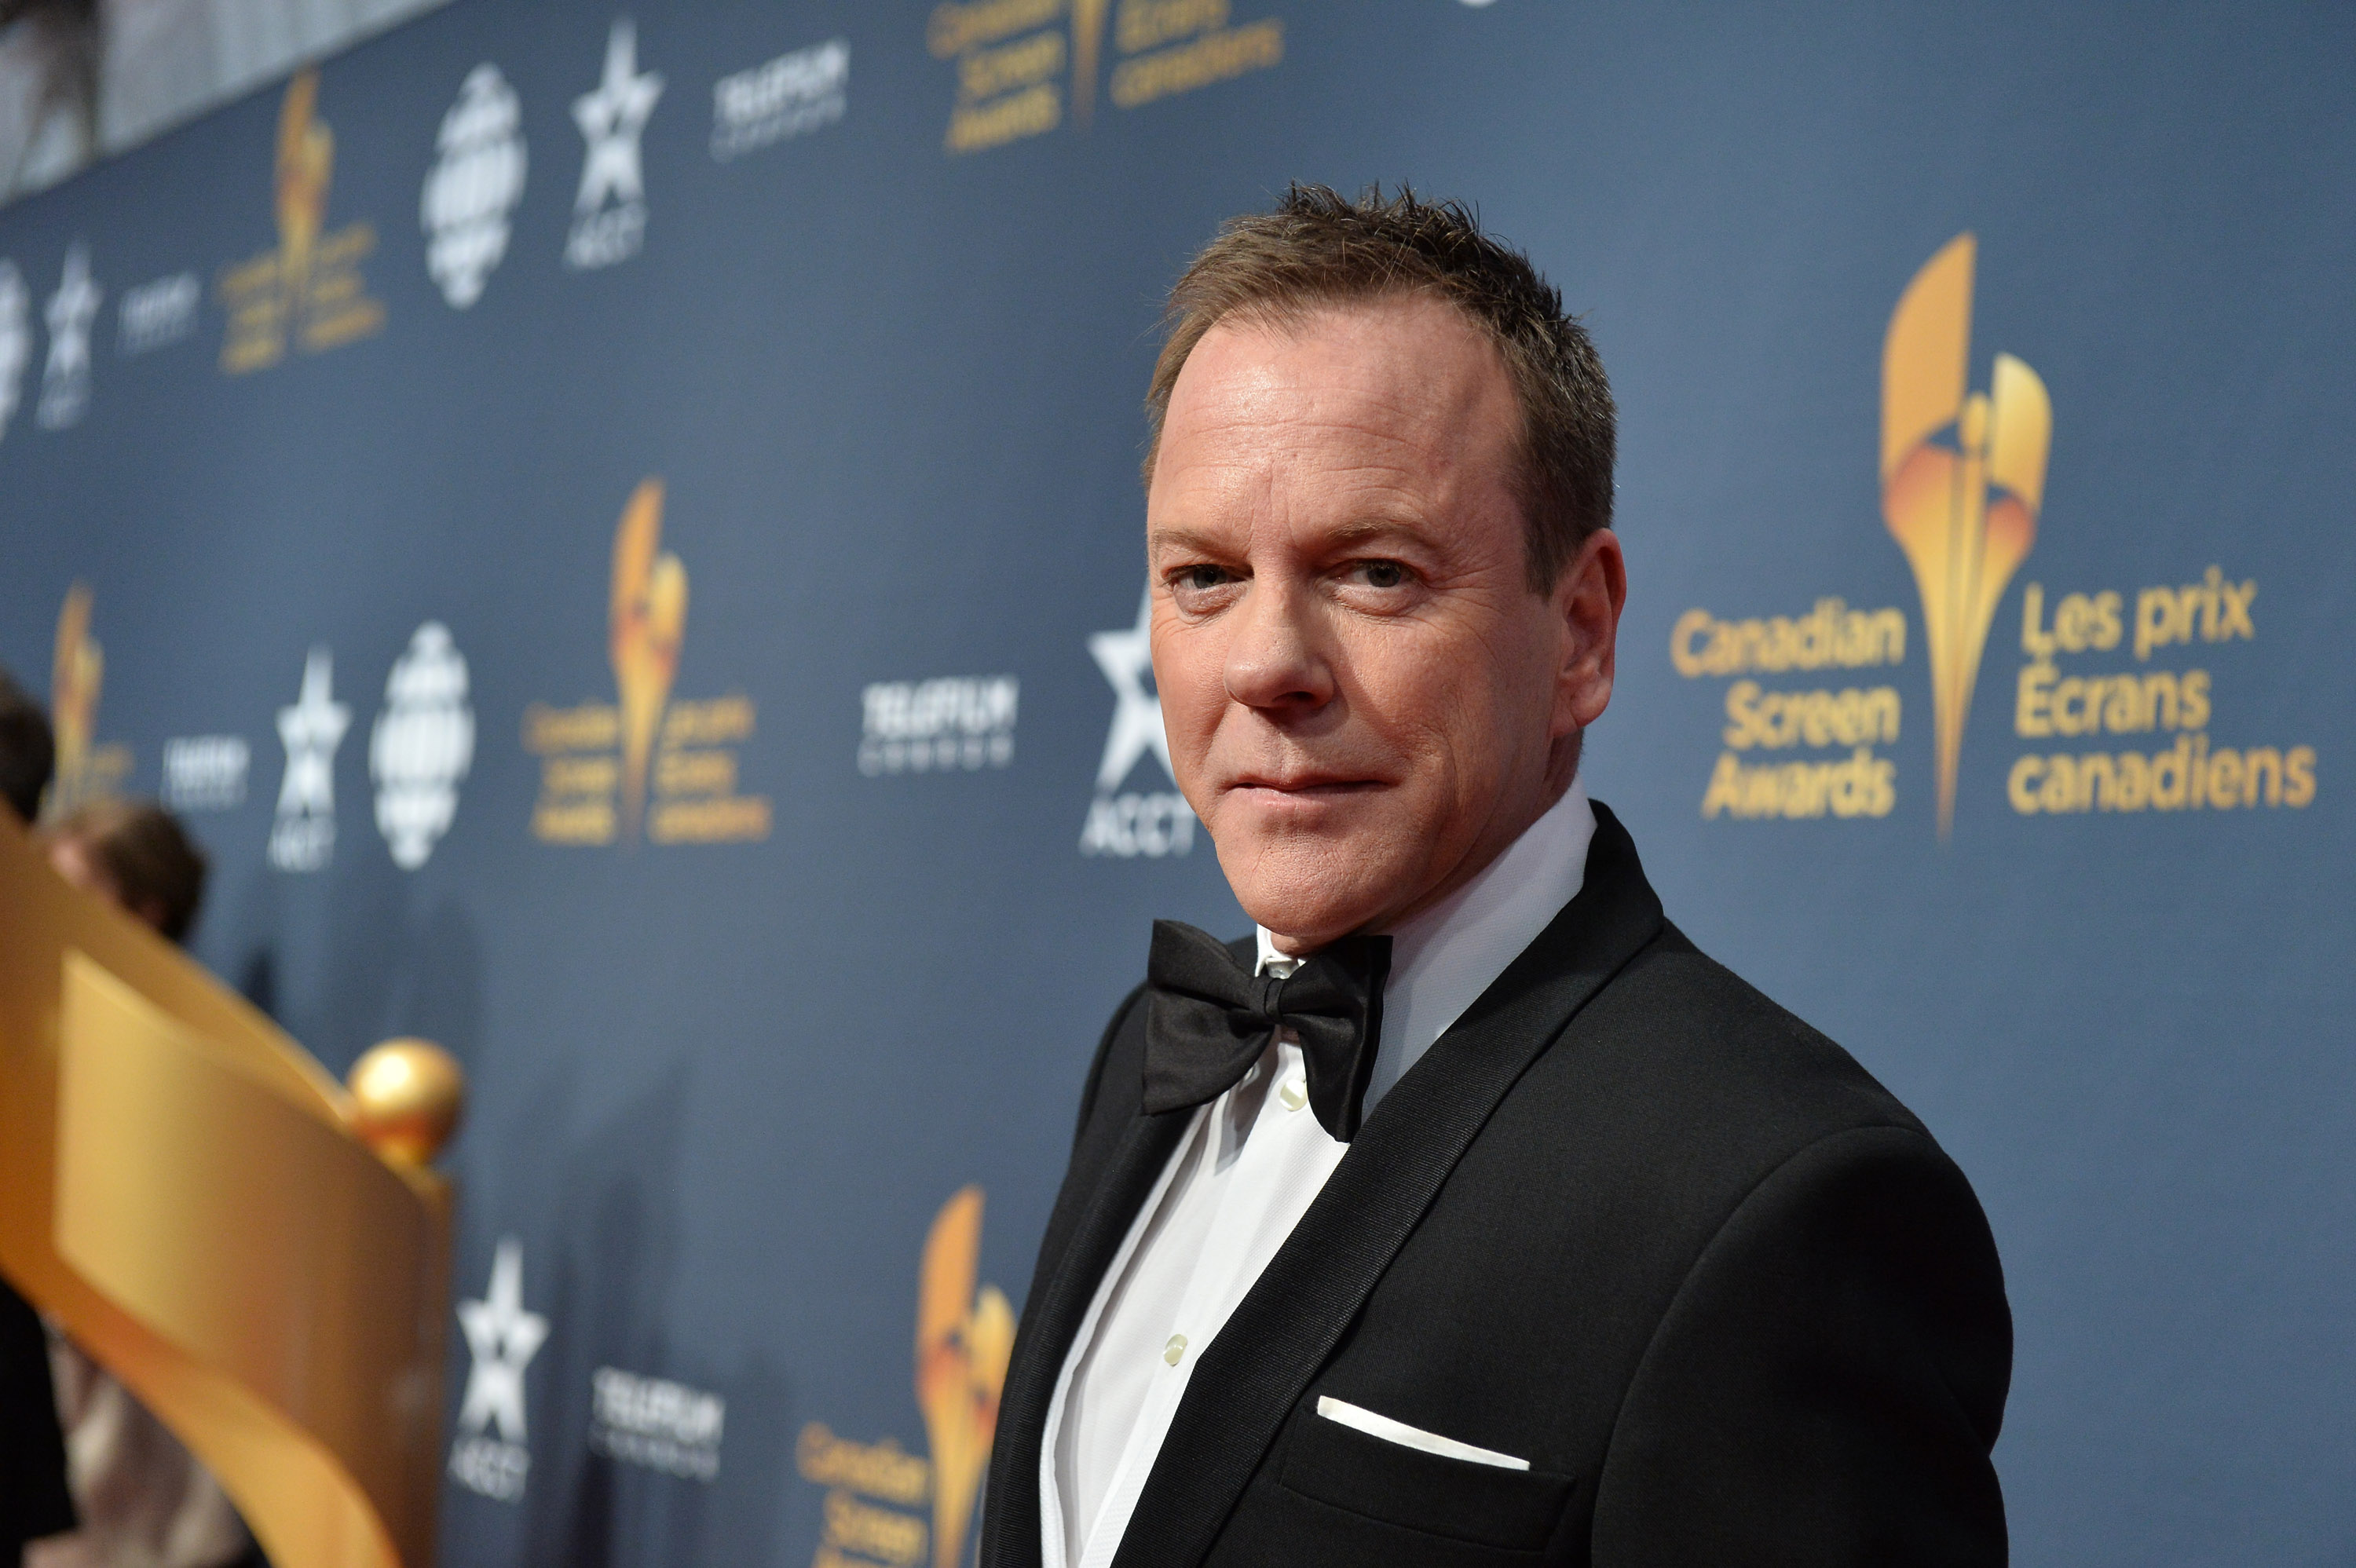 Kiefer Sutherland schools us all on dinner etiquette